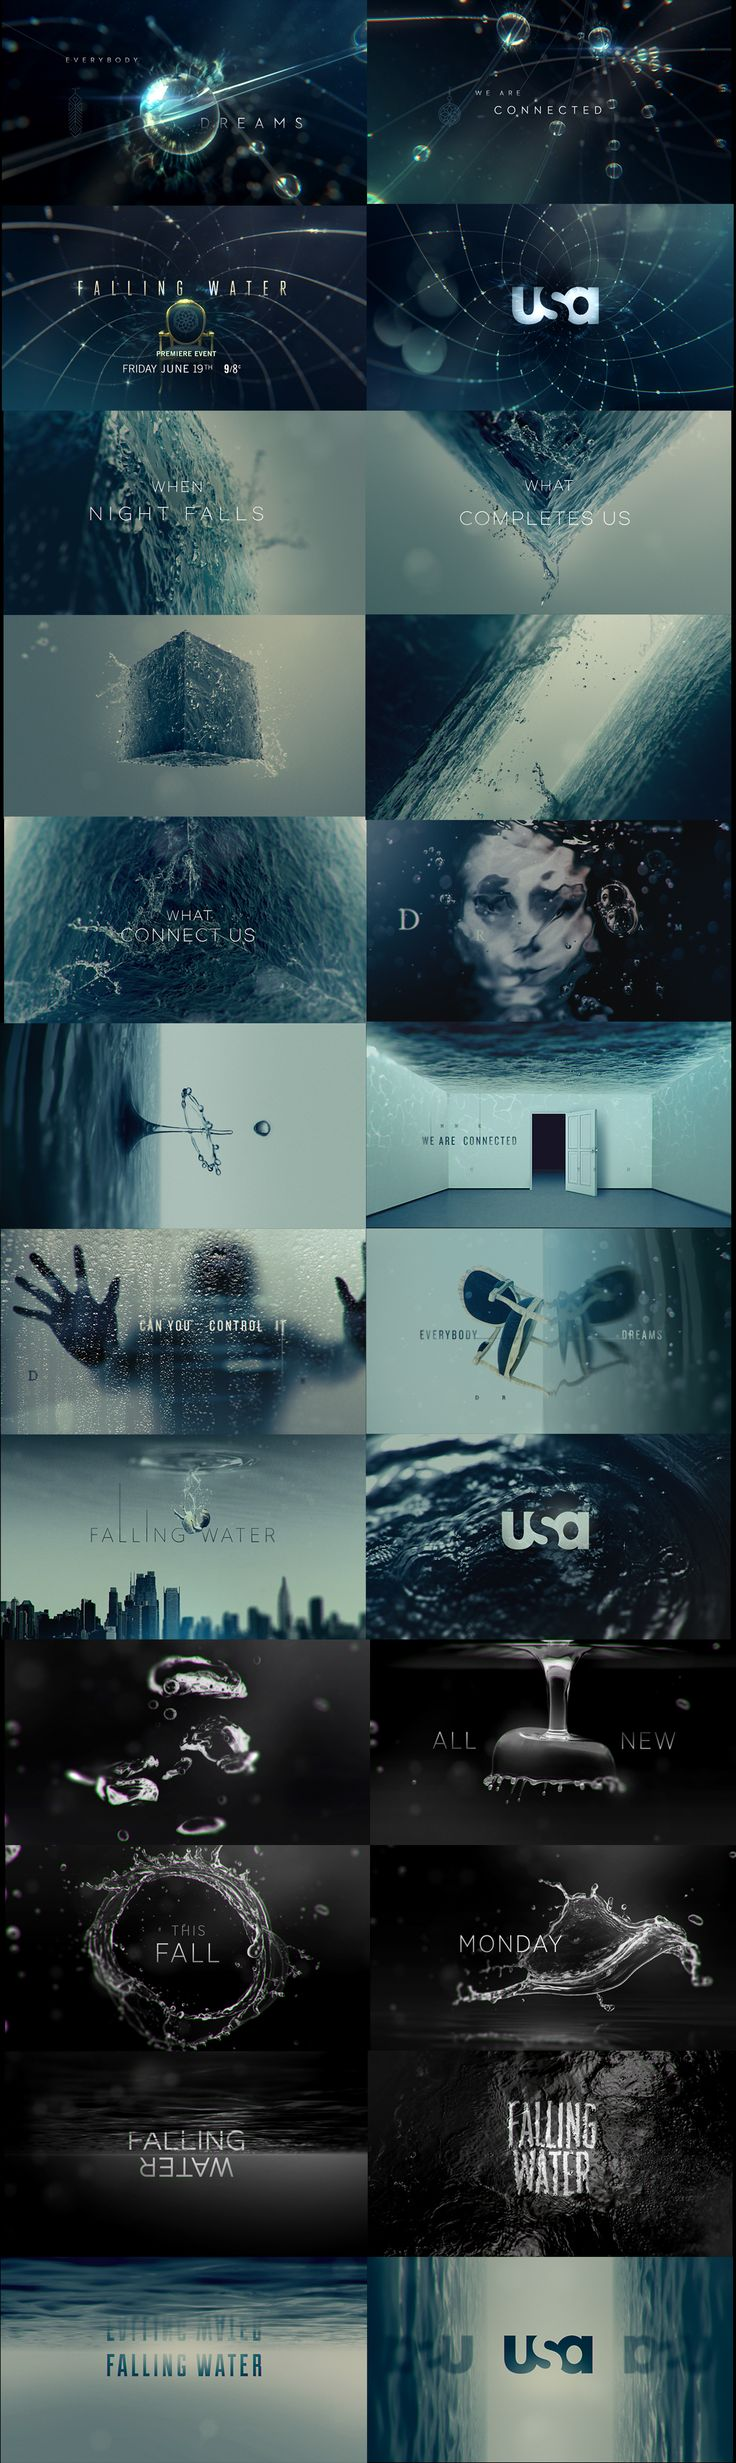 motion graphics/ storyboards/ styleframes | Falling Water — PROMO CONCEPTS for the USA TV Show